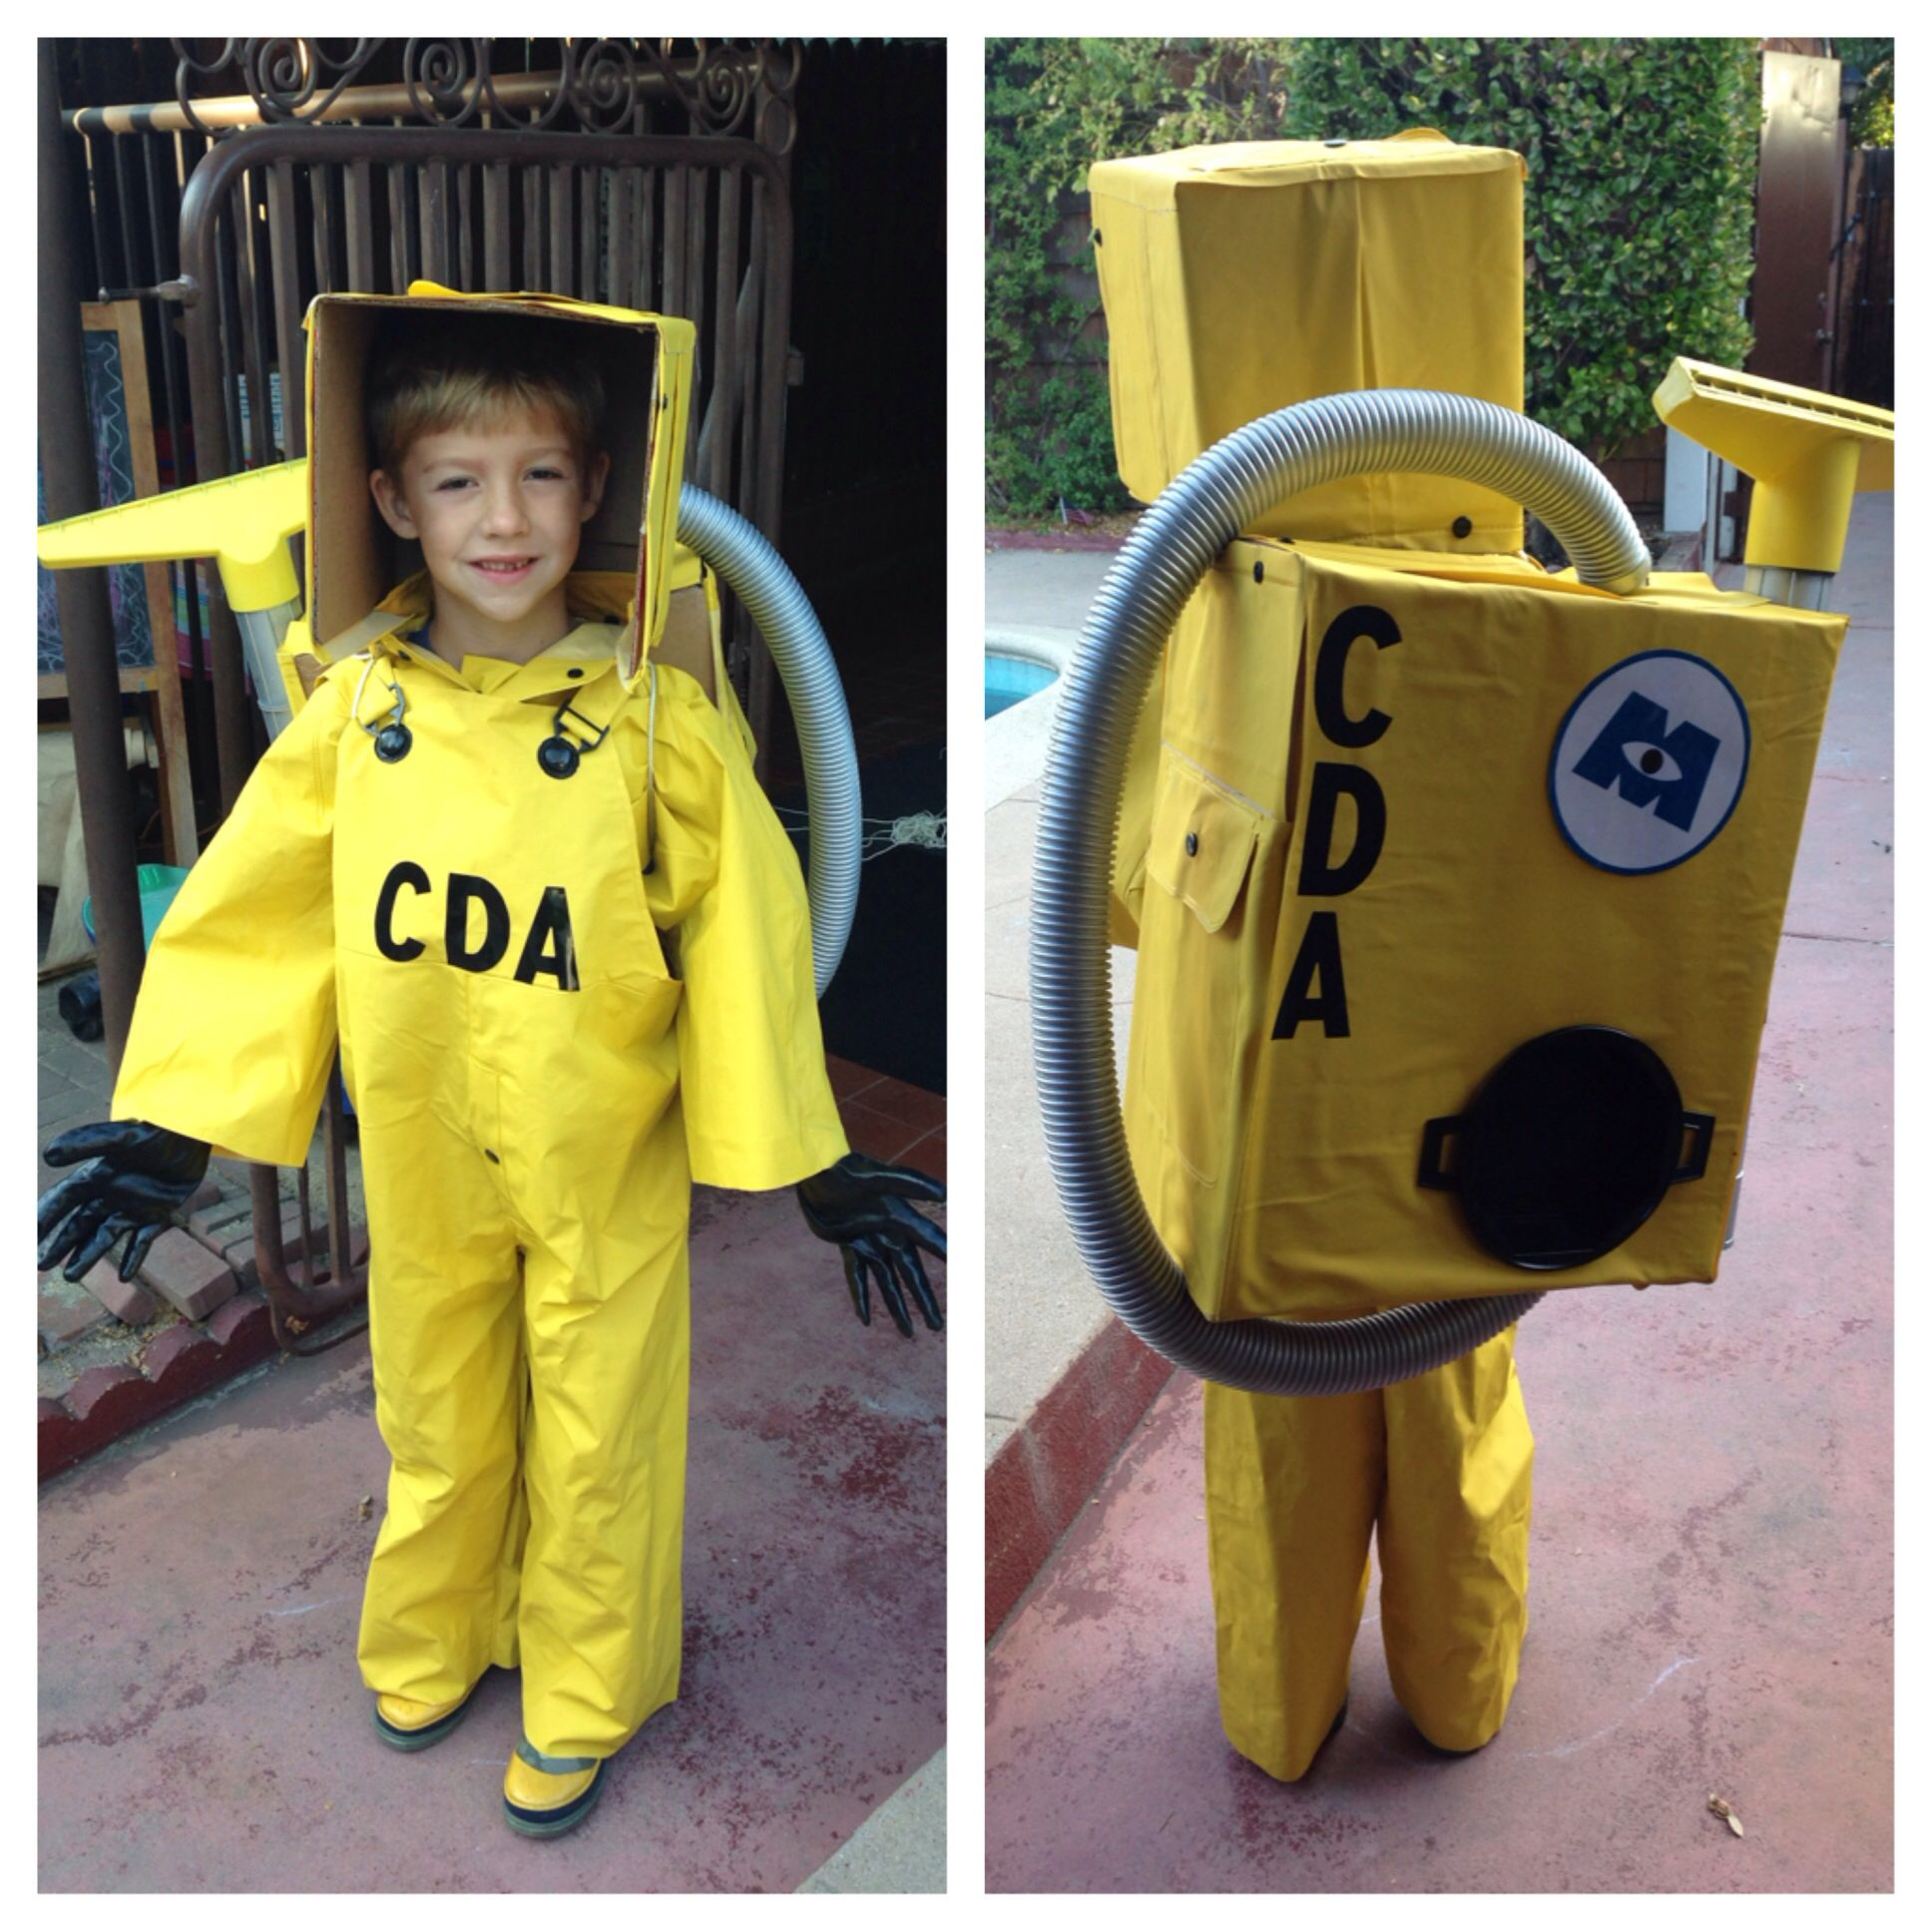 Halloween Carnival 2020 Cda Made a CDA costume (Monsters inc) for my oldest son. My other two